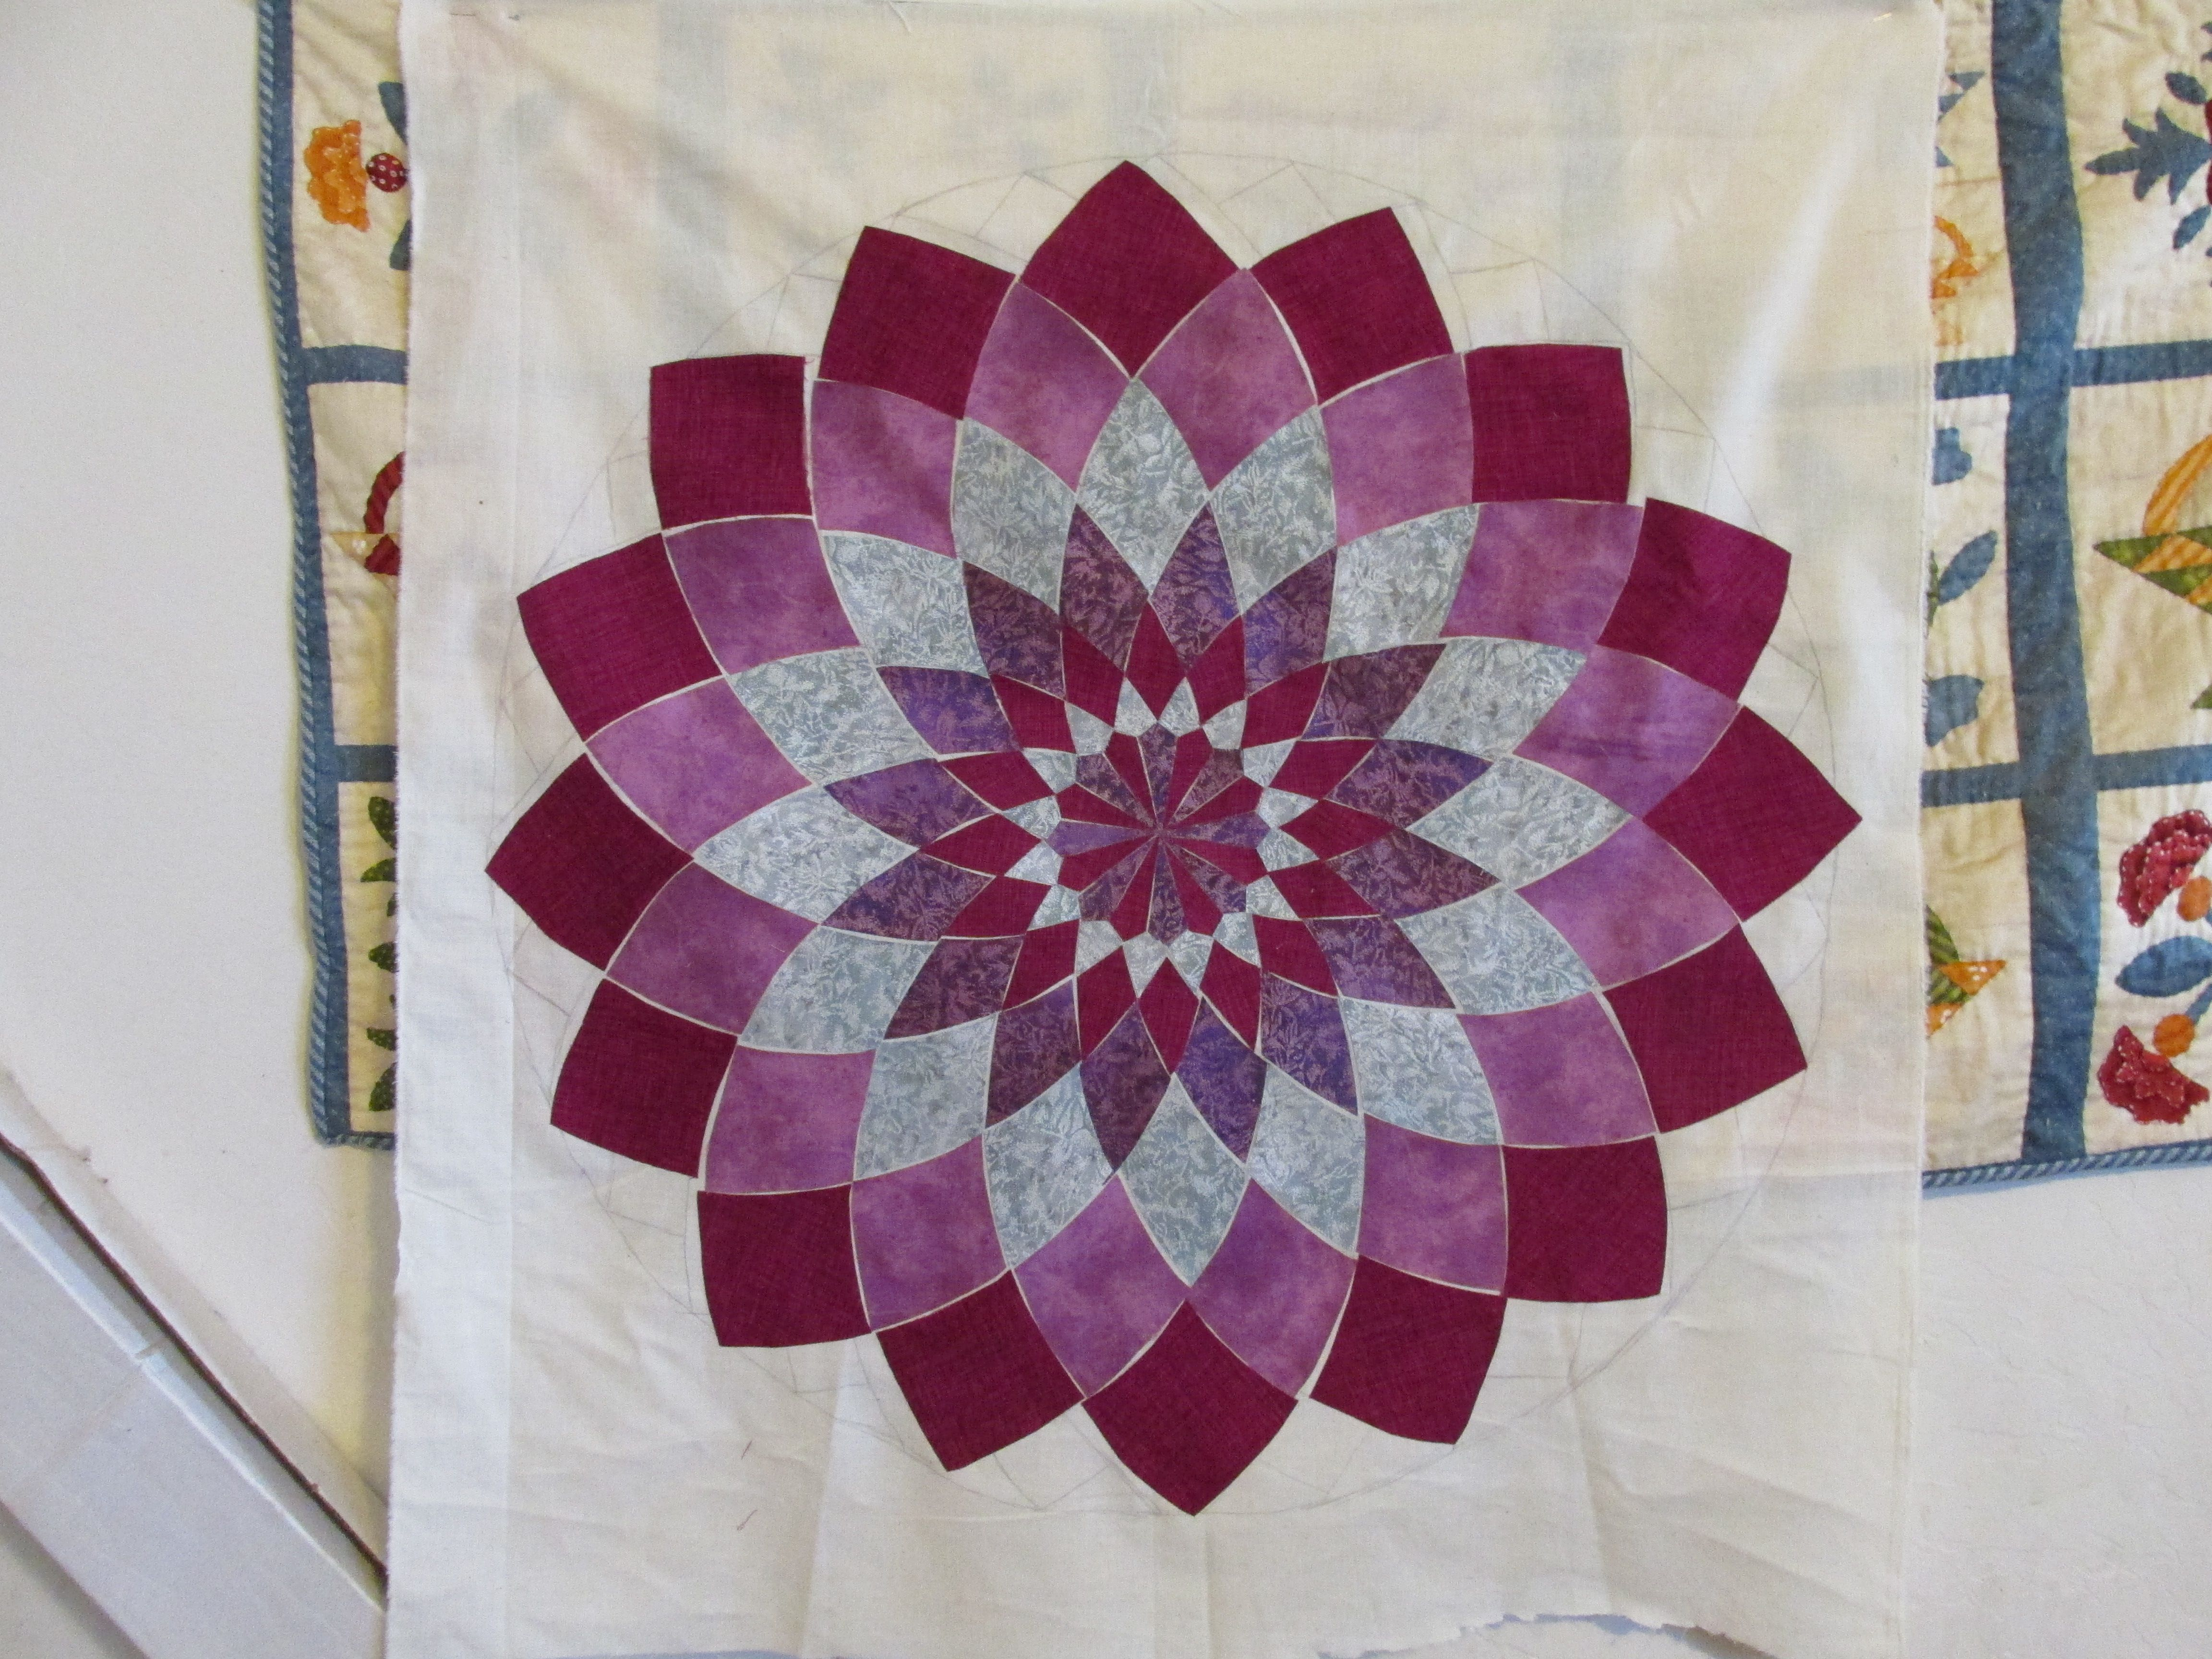 Giant Dahlia Quilt Images : Progress on my Giant Dahlia Quilt Dahlia Quilts Pinterest